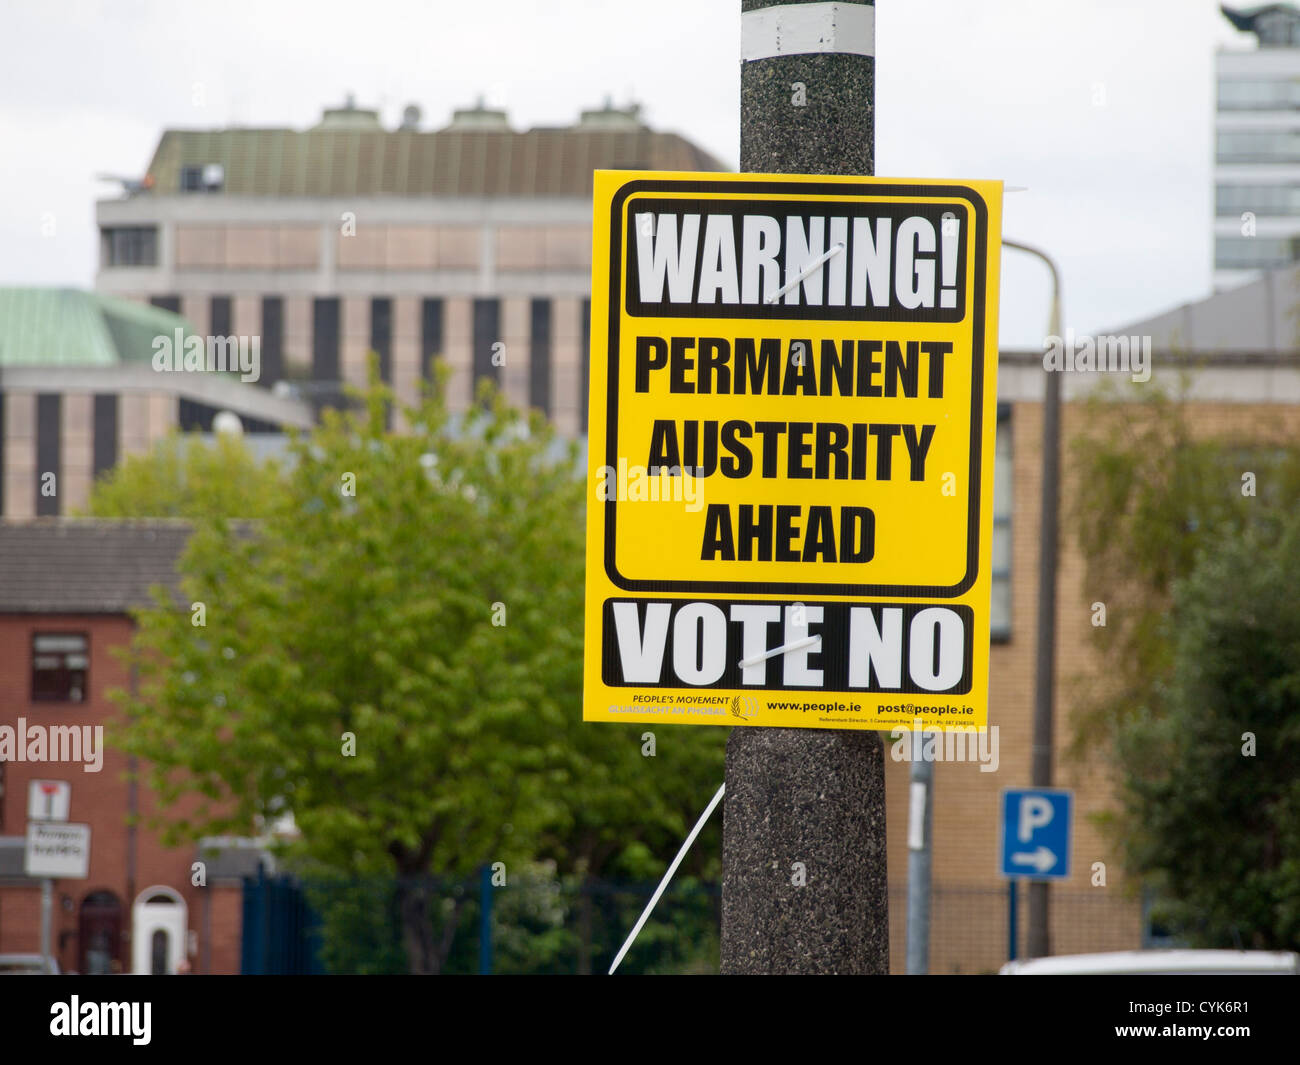 Political agitation posters in Dublin before the austerity vote in Ireland, well thought out slogans - Stock Image